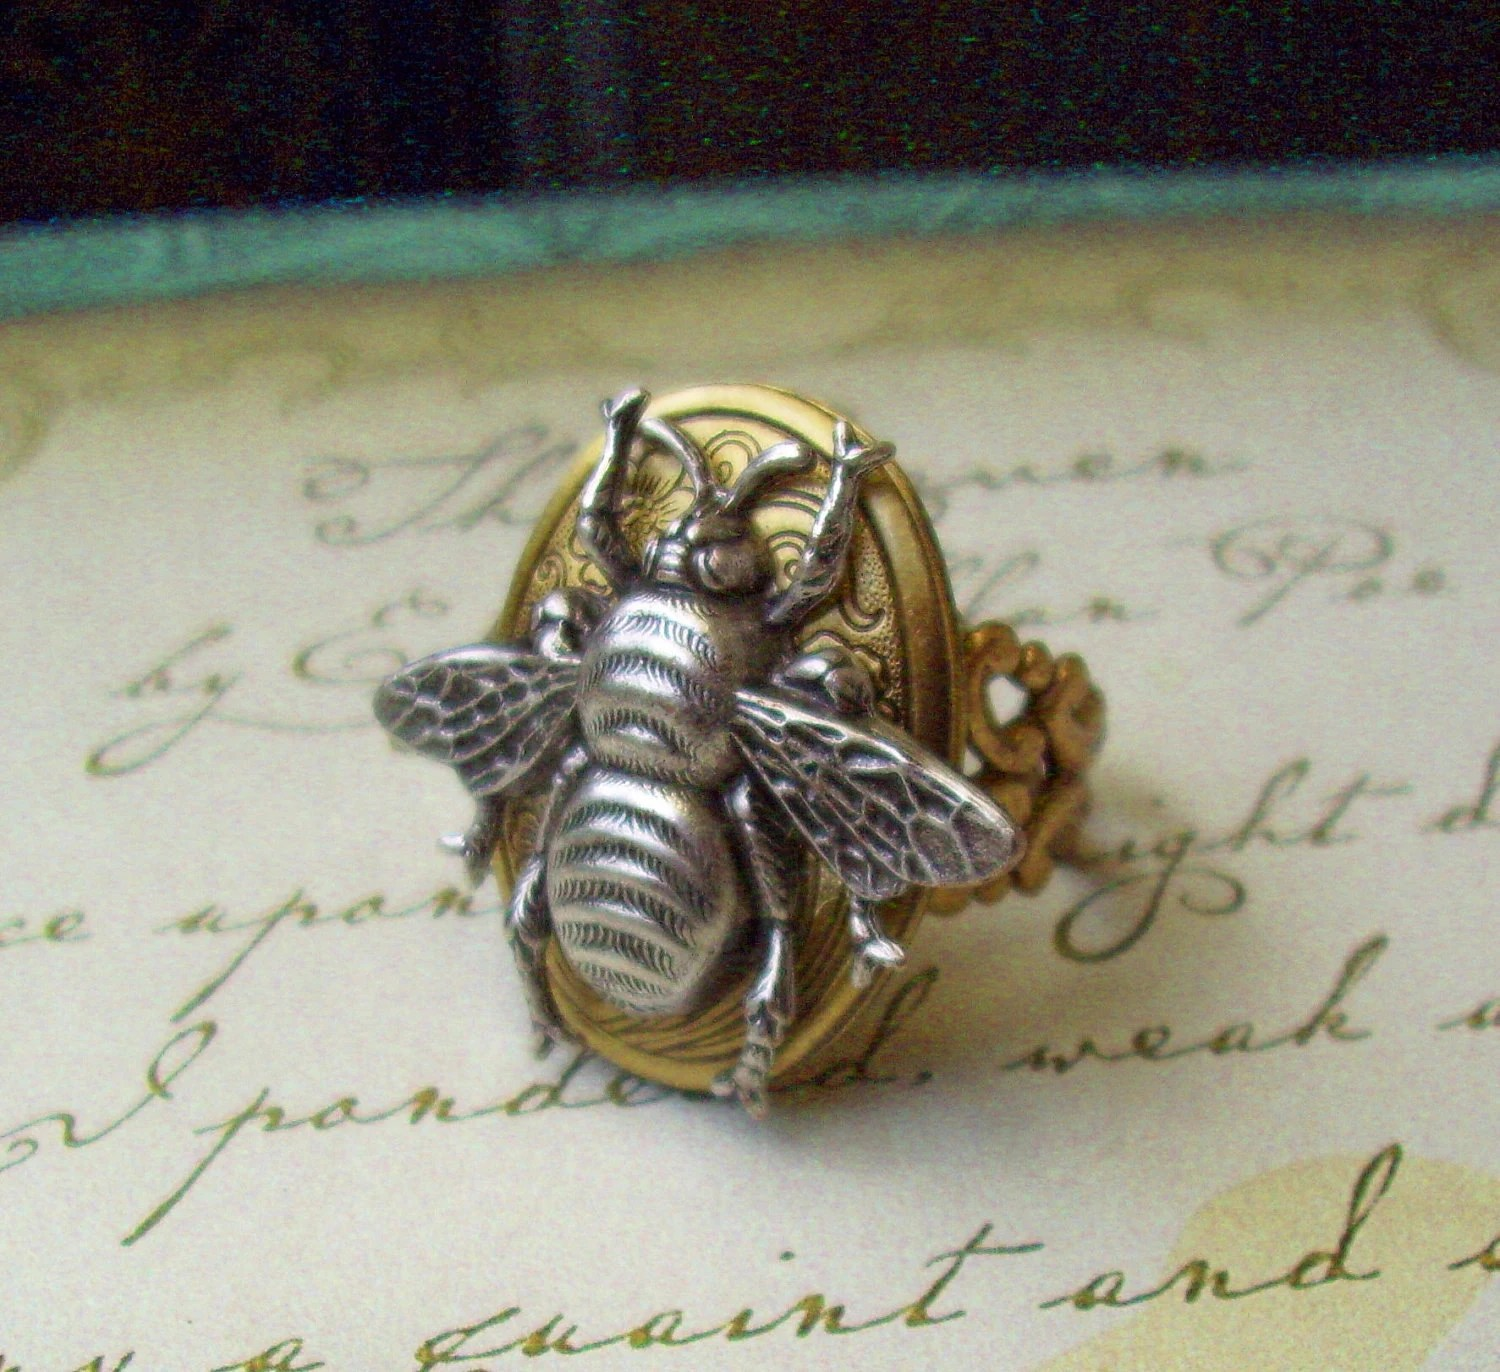 http://www.etsy.com/listing/75864379/steampunk-bumble-bee-locket-ring-working